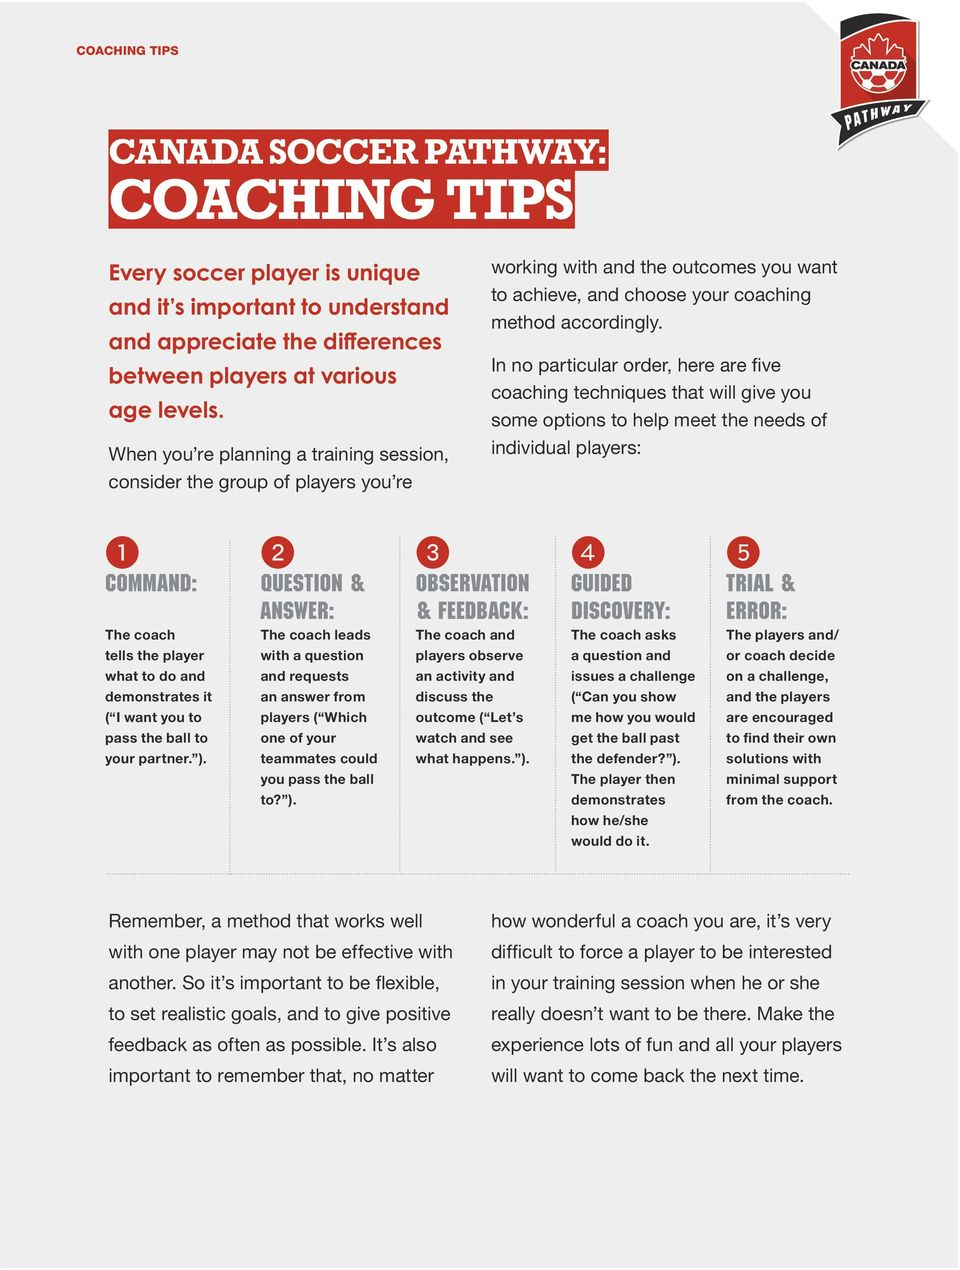 In no particular order, here are five coaching techniques that will give you some options to help meet the needs of individual players: 1 Command: The coach tells the player what to do and